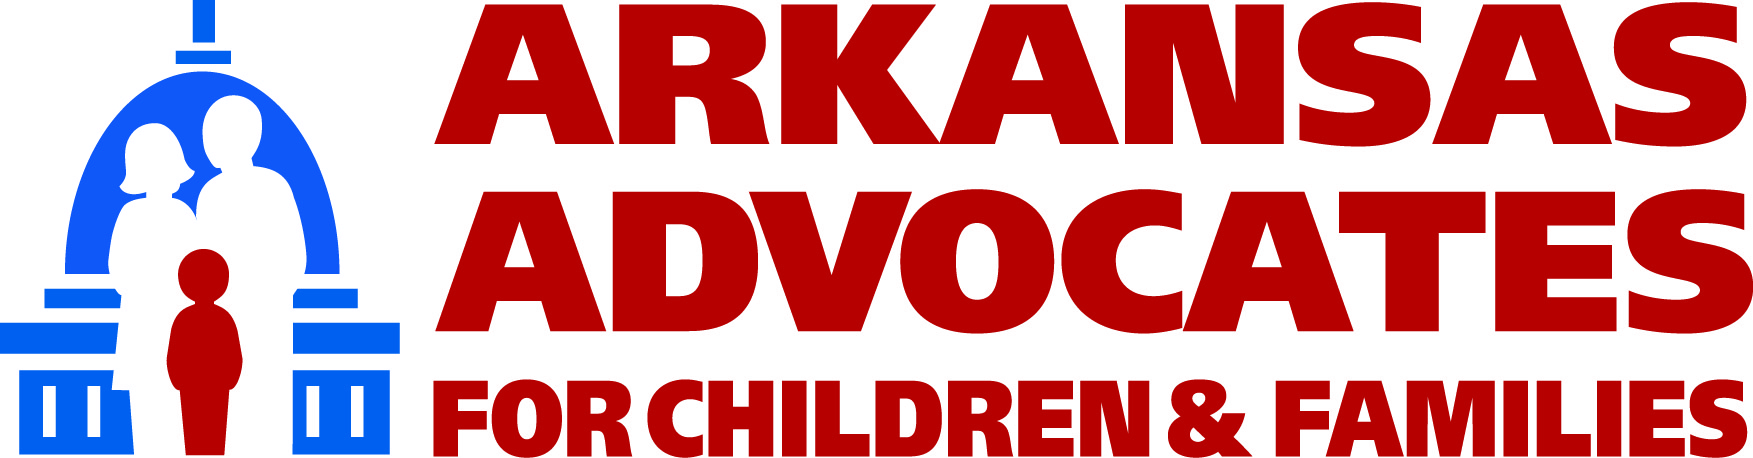 Jobs Arkansas Advocates for Children and Families (AACF)